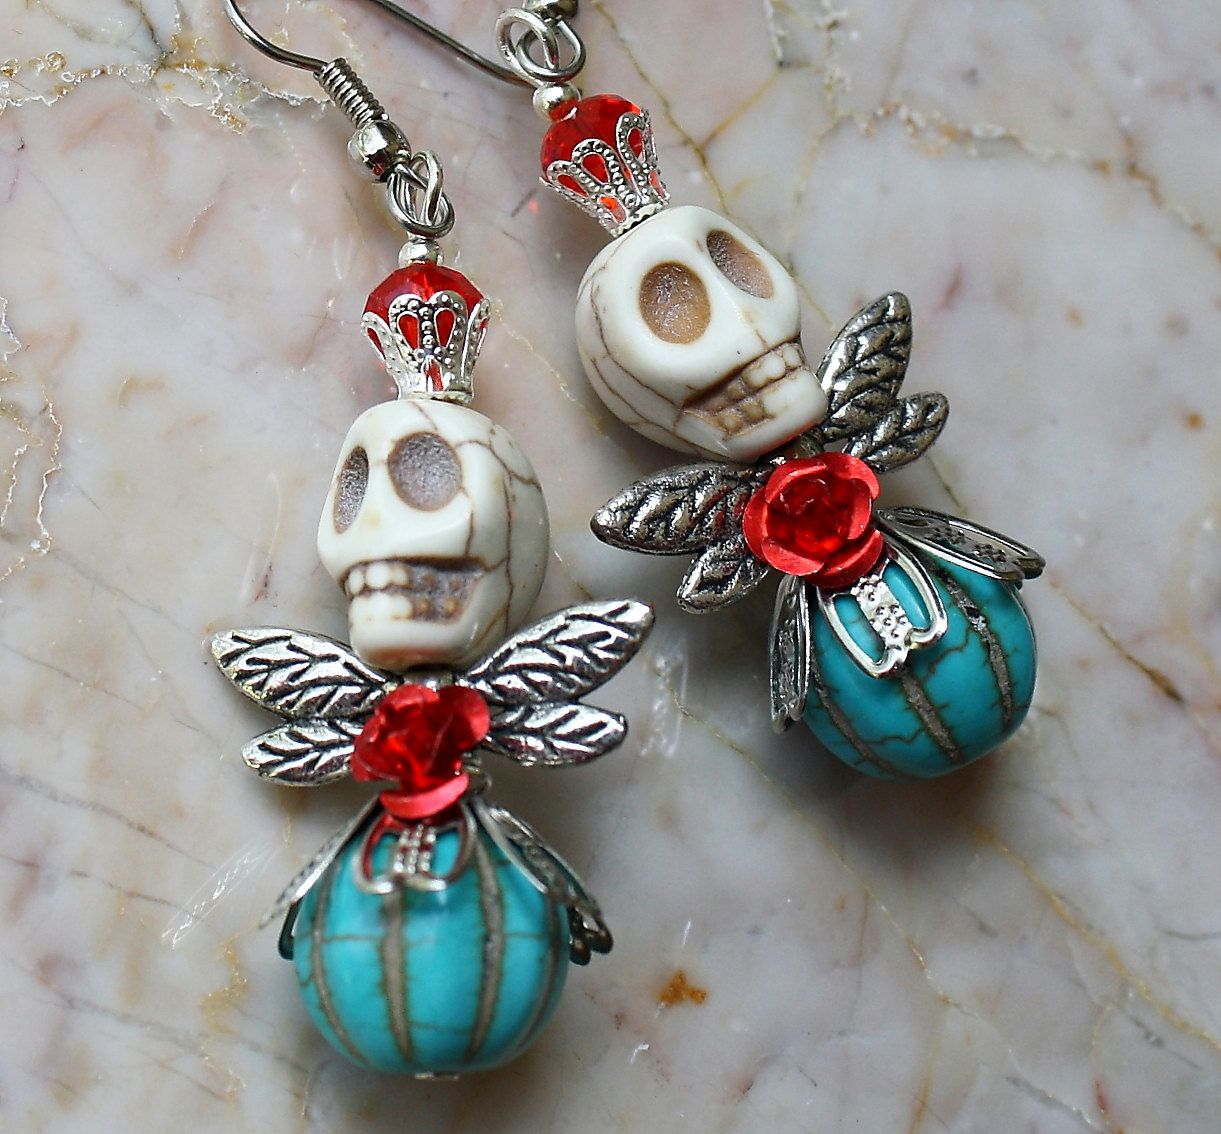 Day of the Dead Dia de los Muertos Frida Kahlo Angel Fairy Red Rose Turquoise Skull Dangle Jewelry Festival Hypoallergenic Earrings. $12.00, via Etsy.